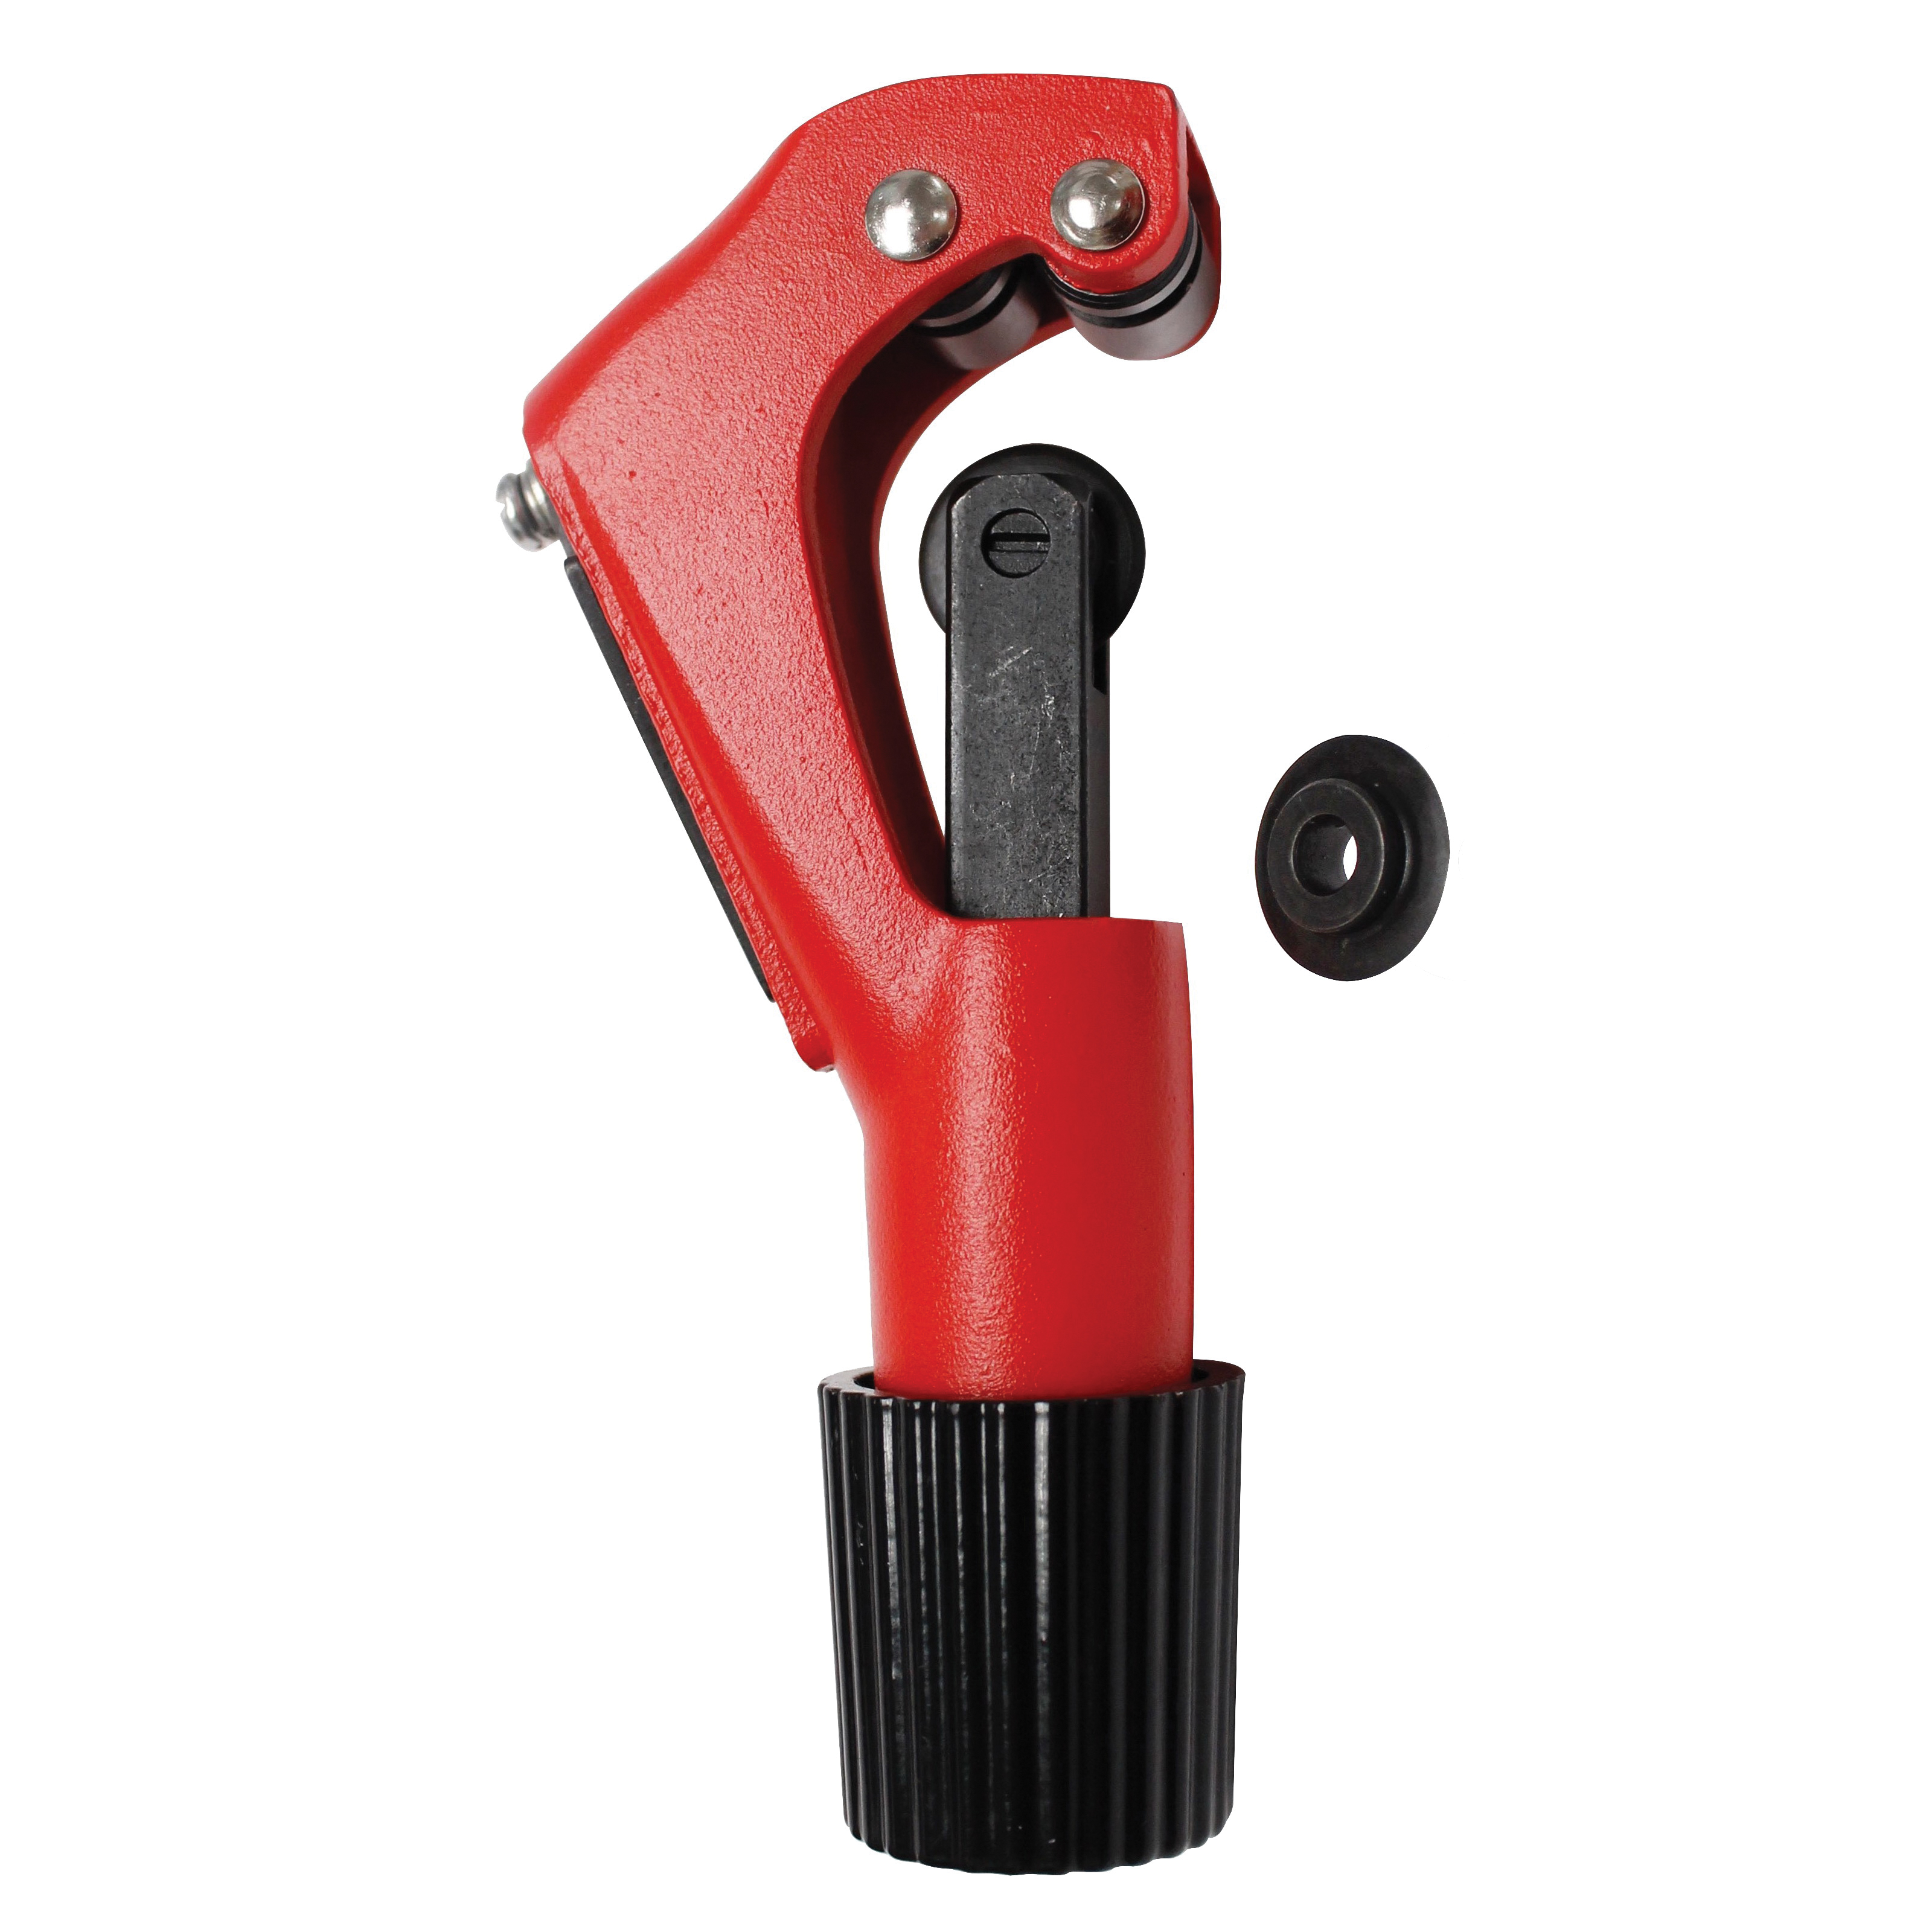 Picture of Keeney K840-105 Tube Cutter, 1-1/8 in Max Pipe/Tube Dia, HCS Blade